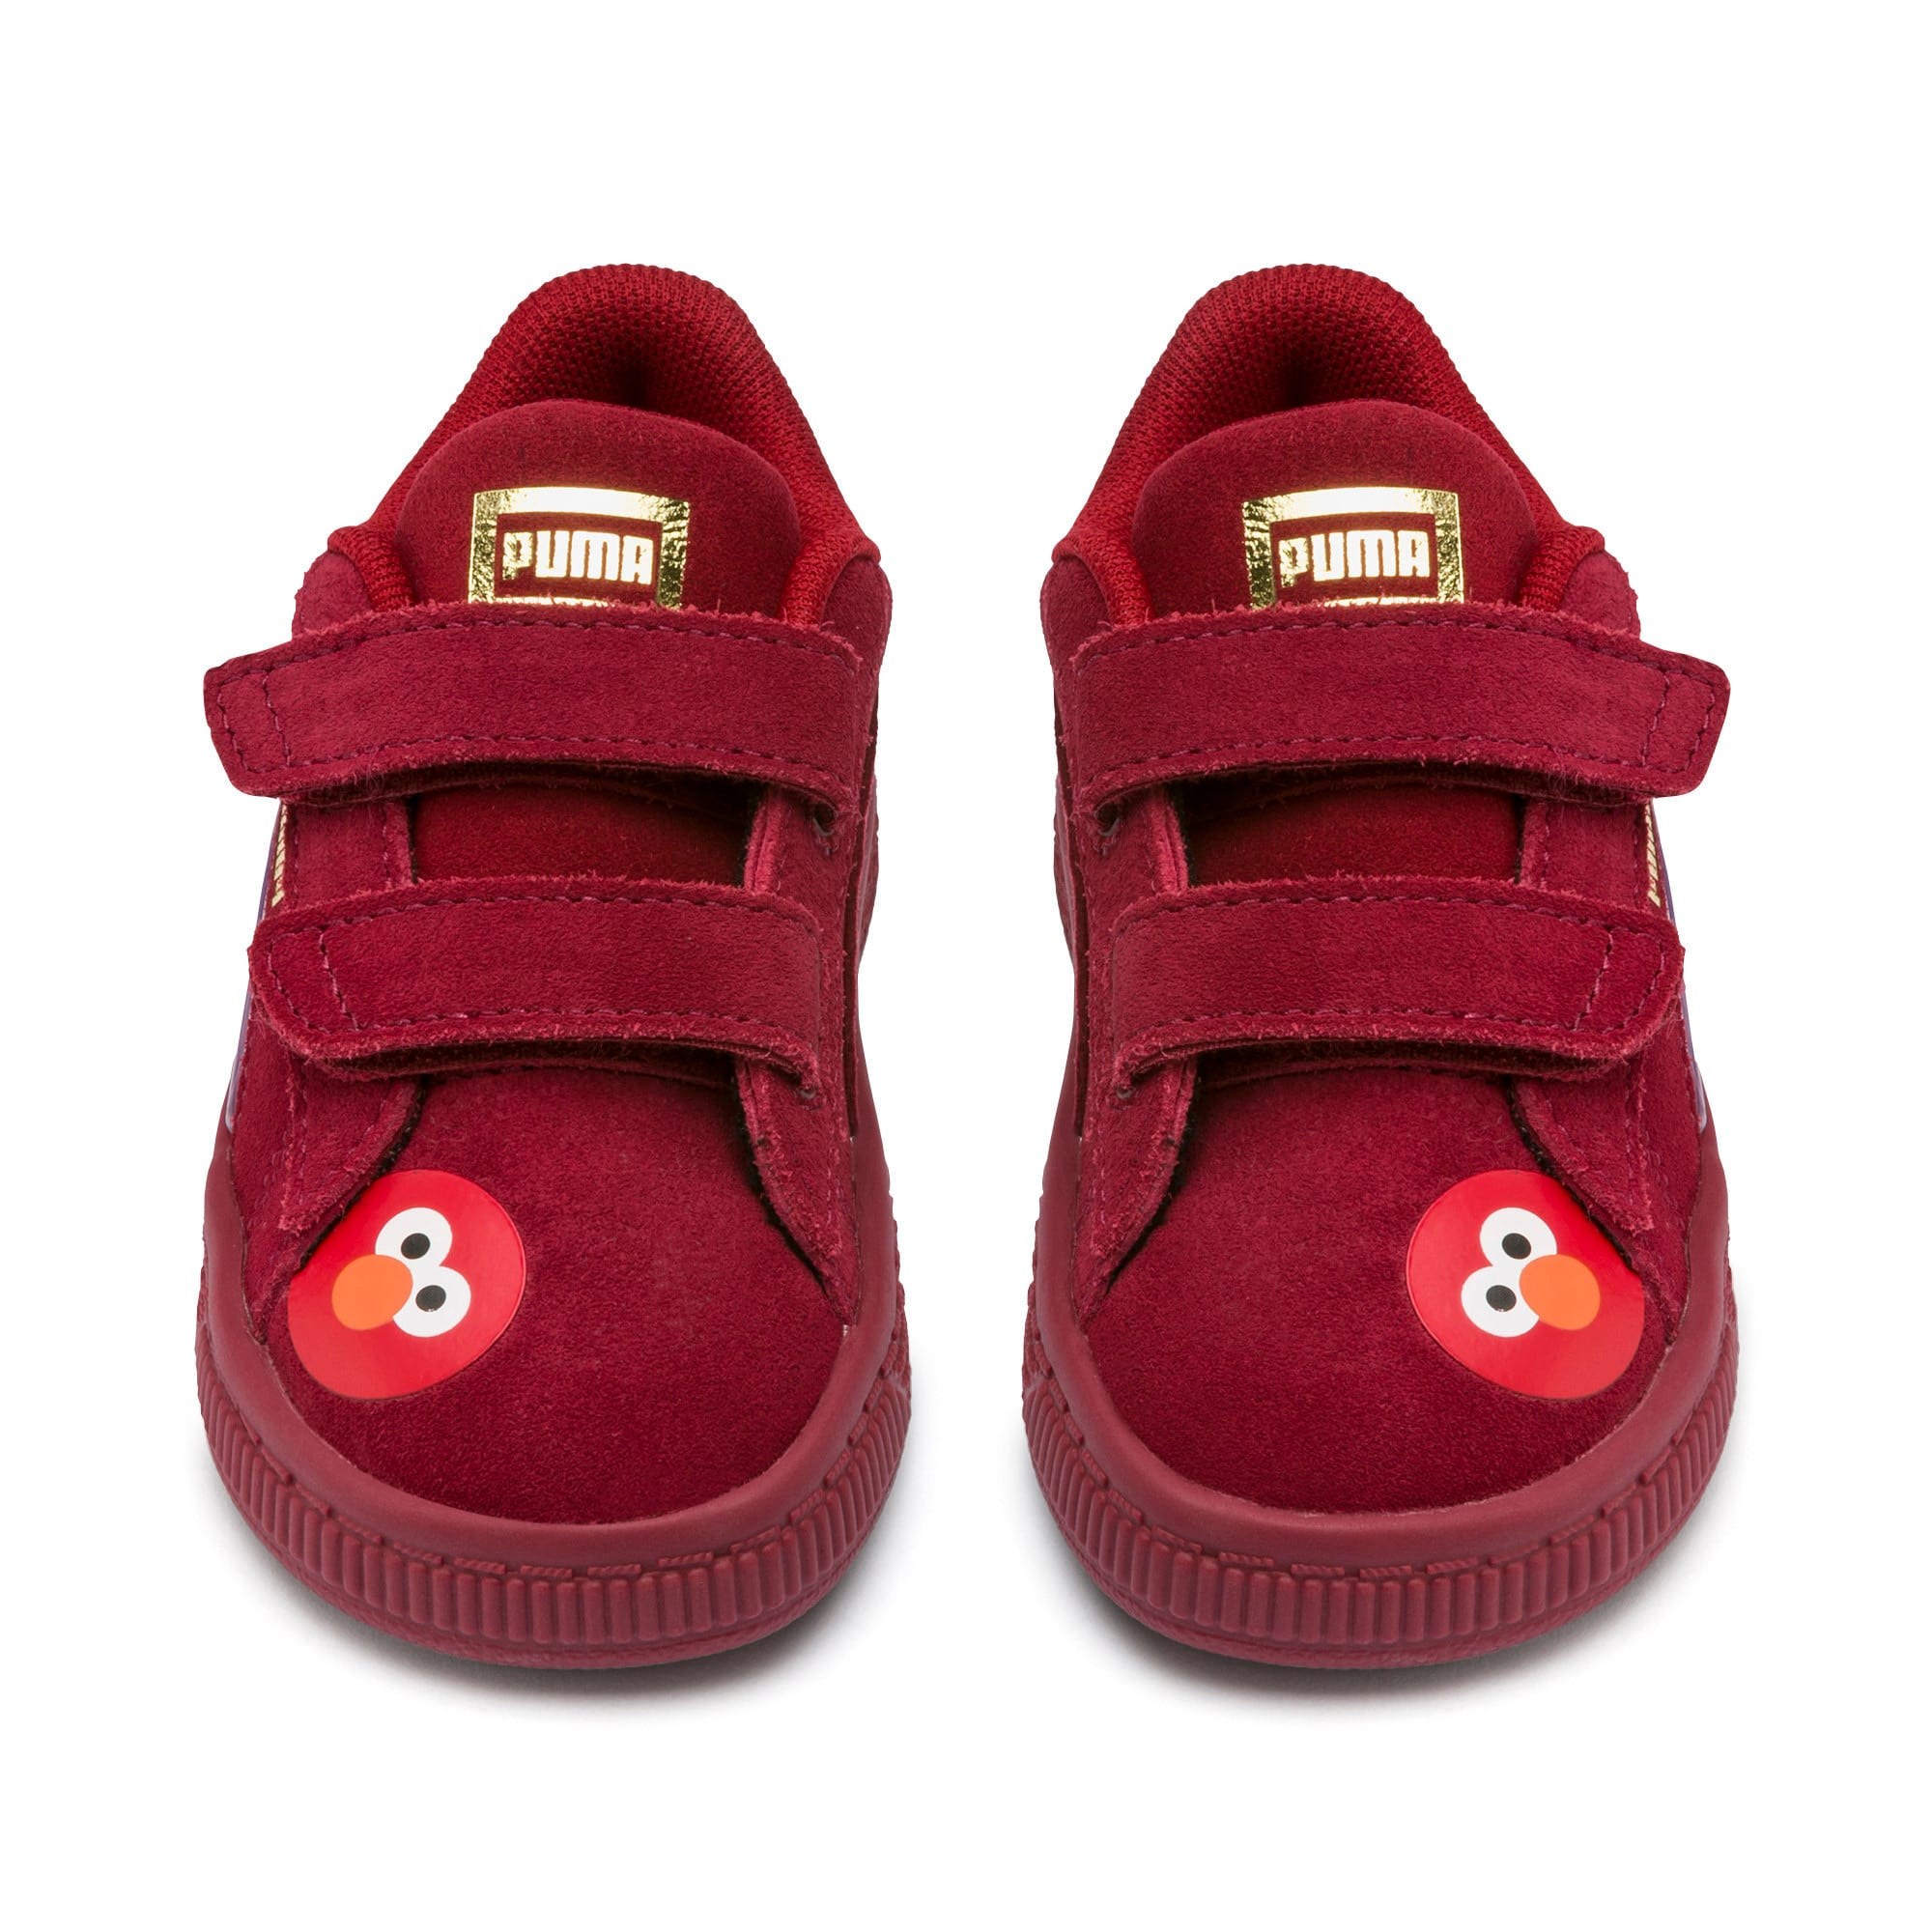 Thumbnail 7 of Sesame Street 50 Suede Statement Babies' Trainers, Rhubarb-Puma White, medium